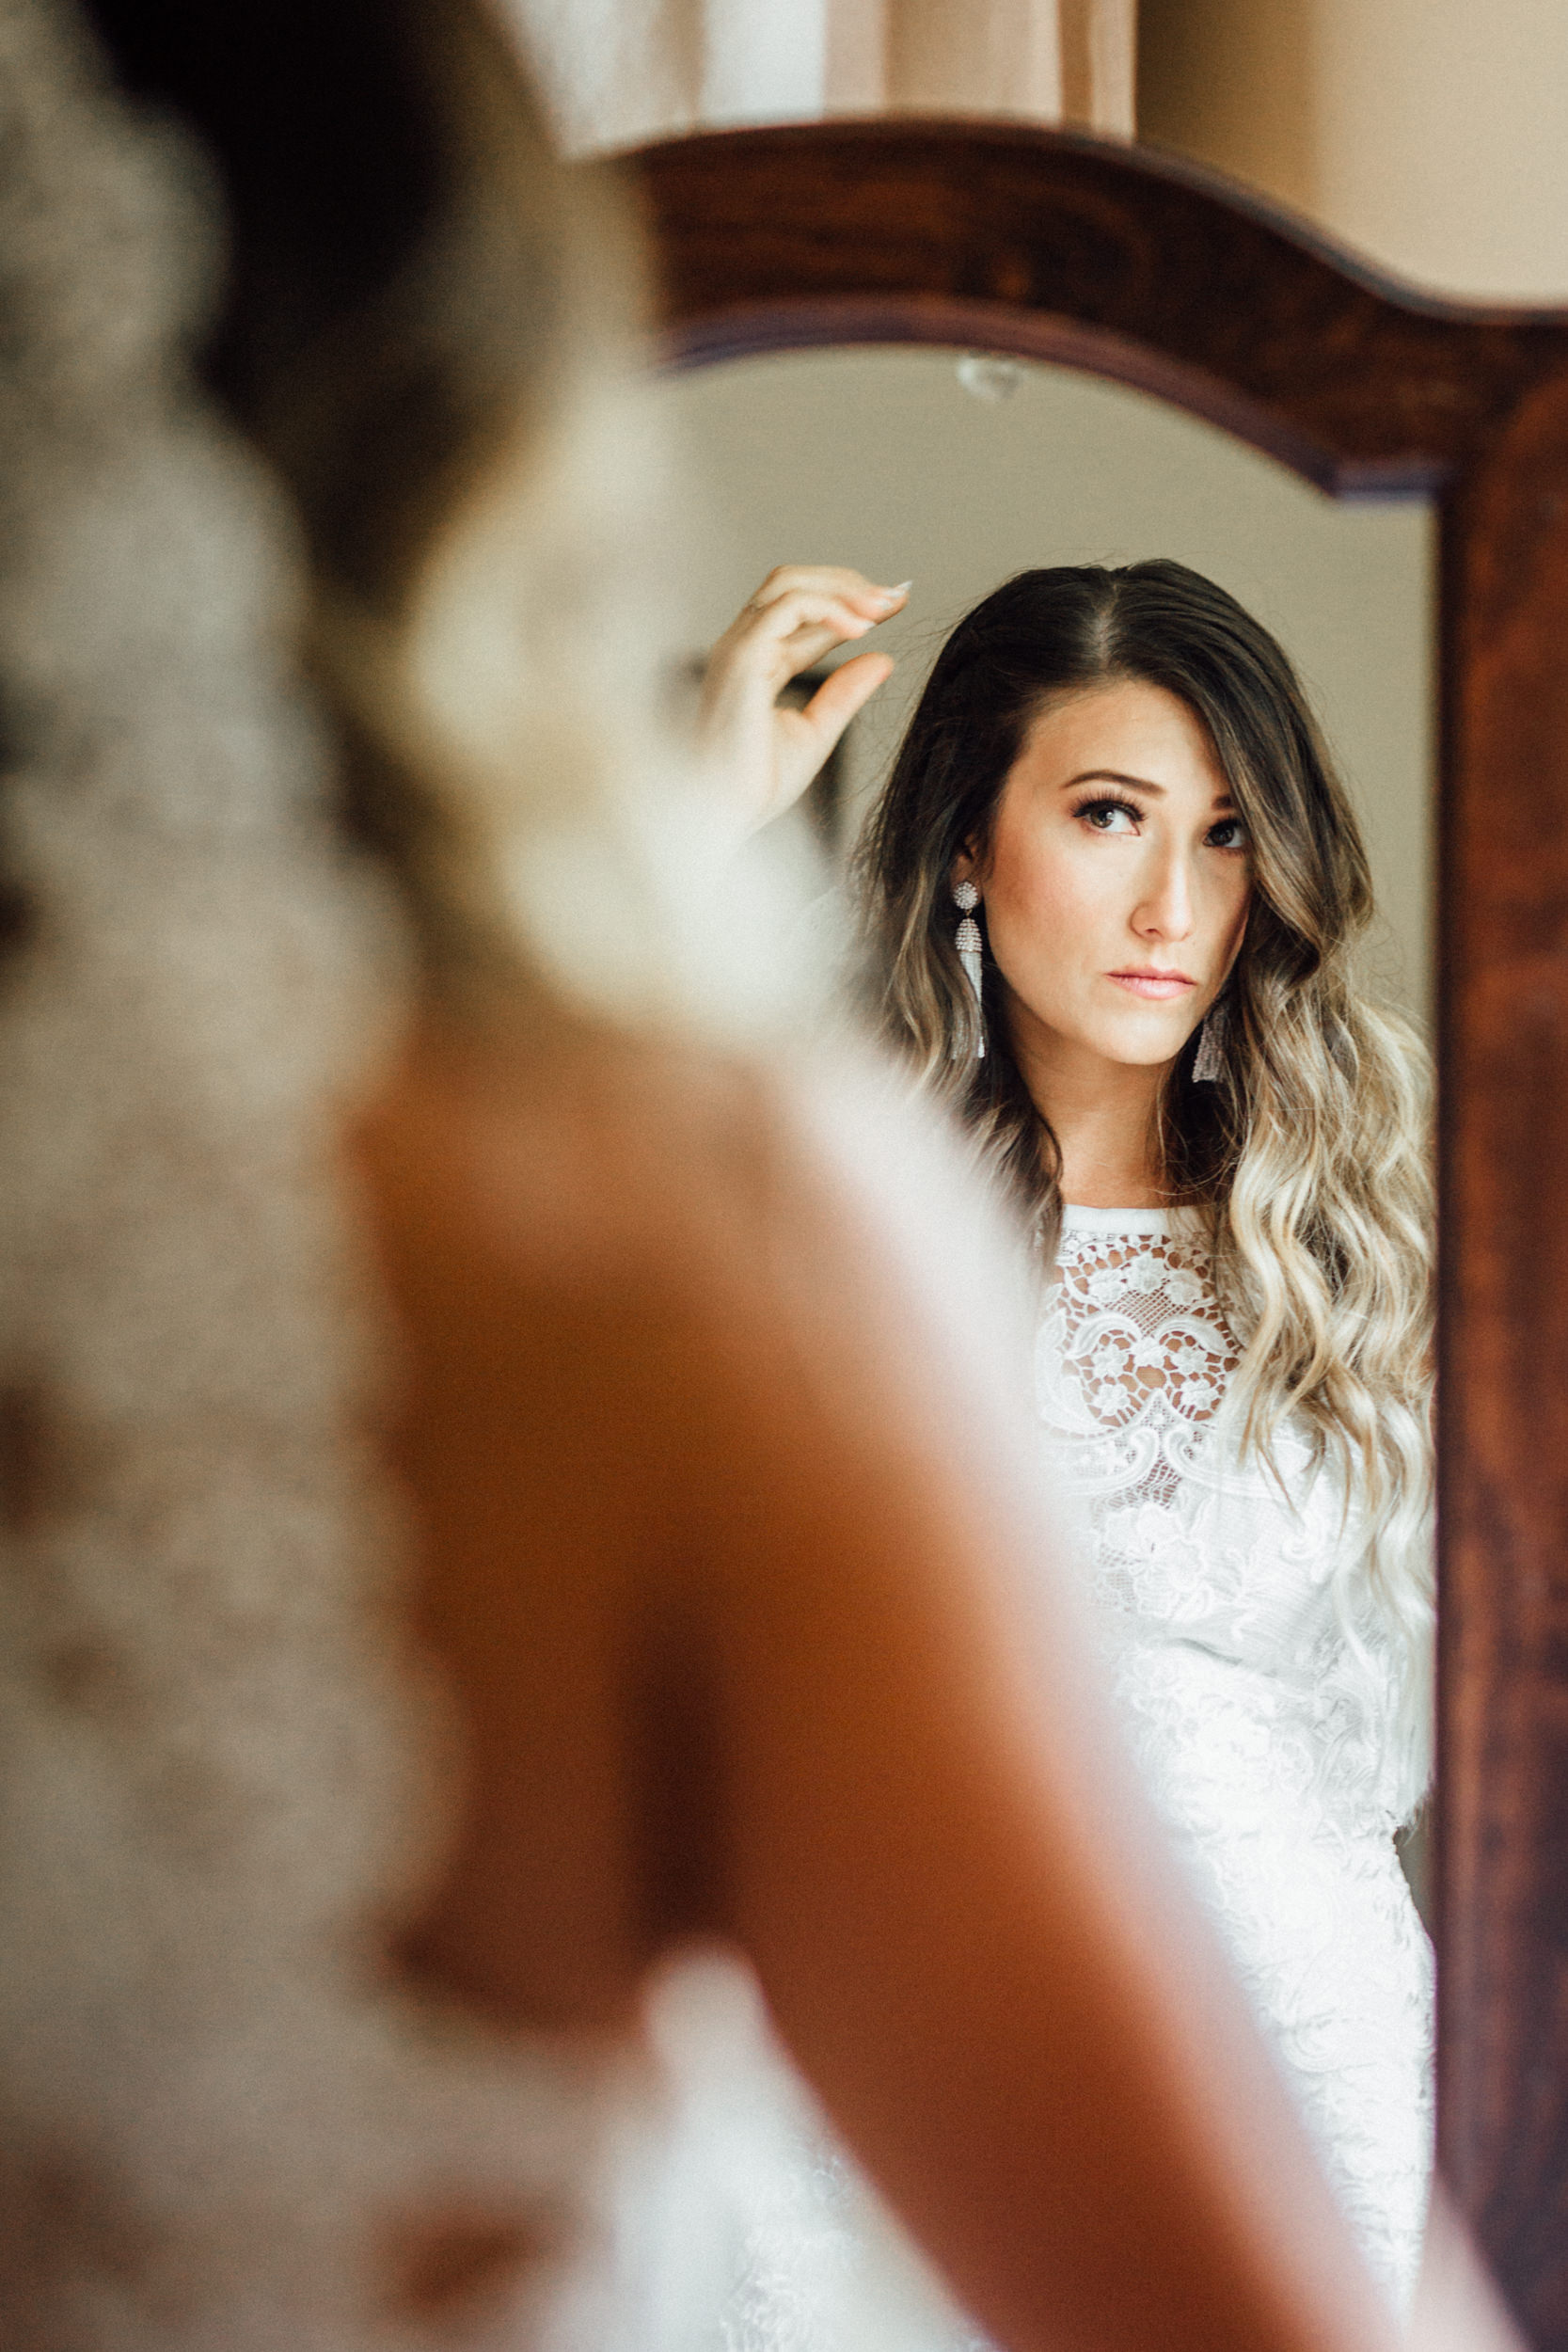 AK bride getting ready in front of antique mirror